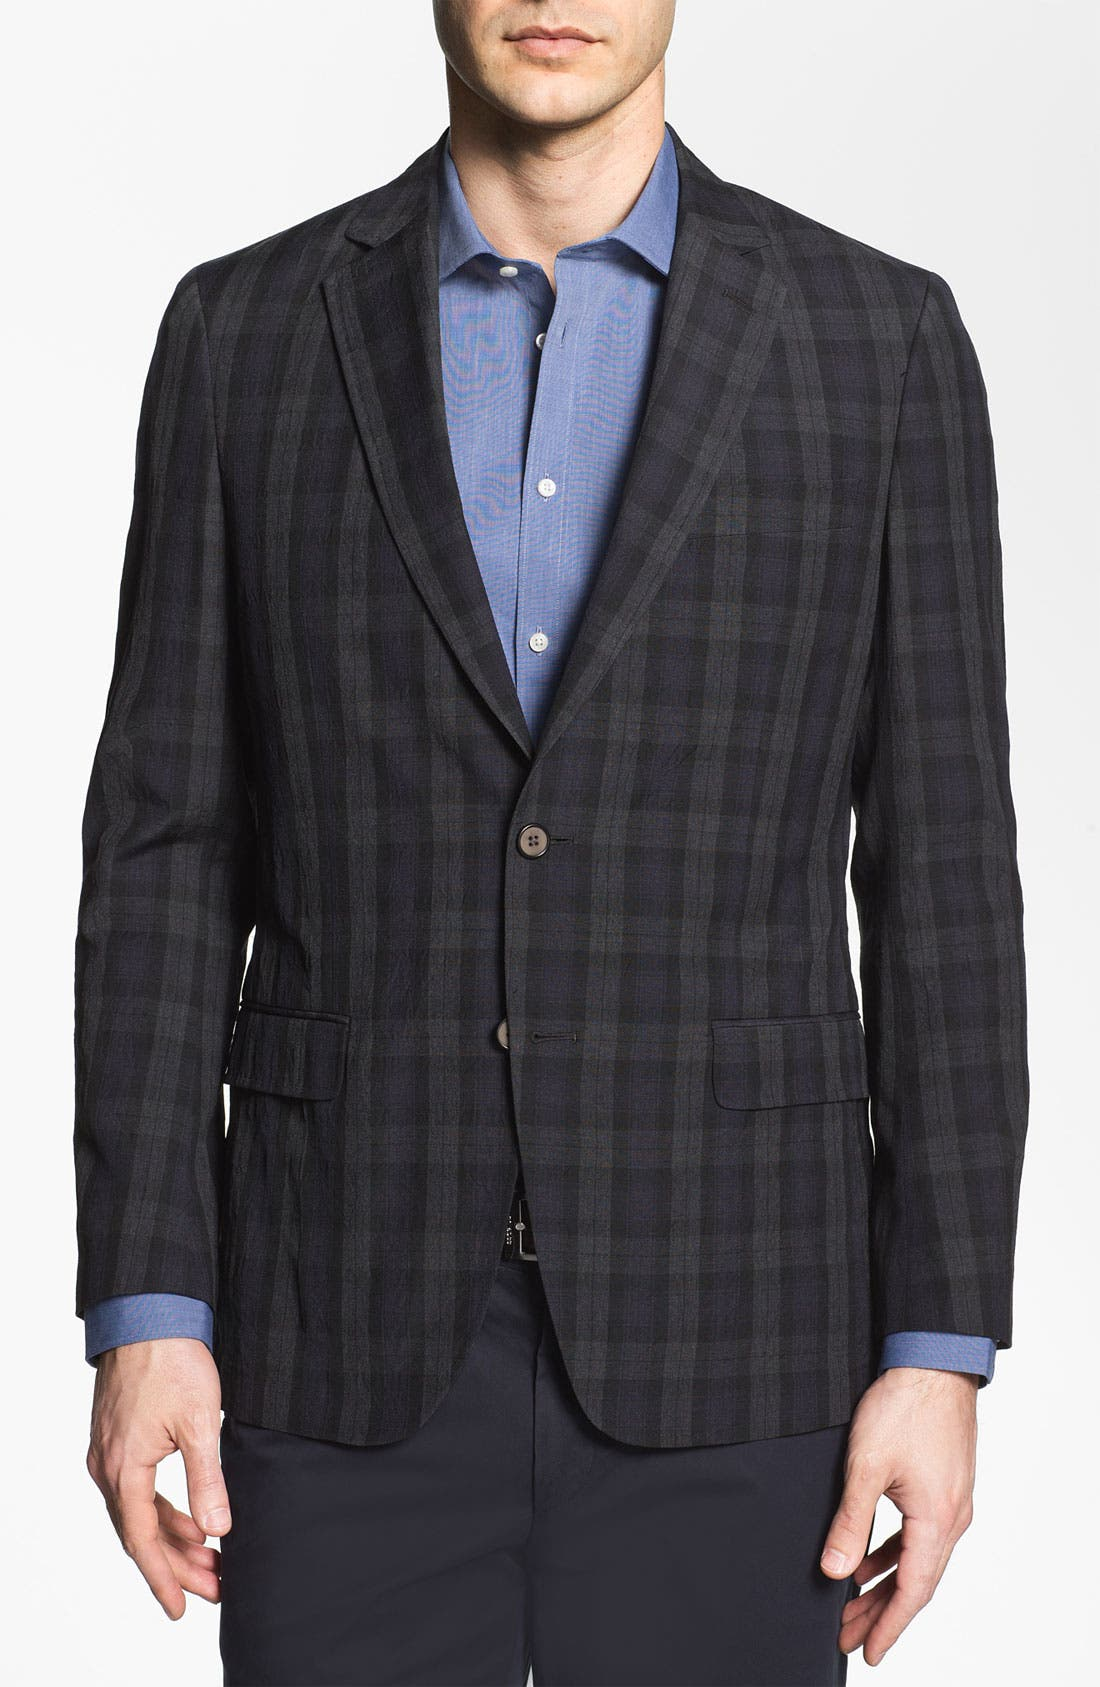 Alternate Image 1 Selected - Michael Kors Trim Fit Plaid Wool Sportcoat